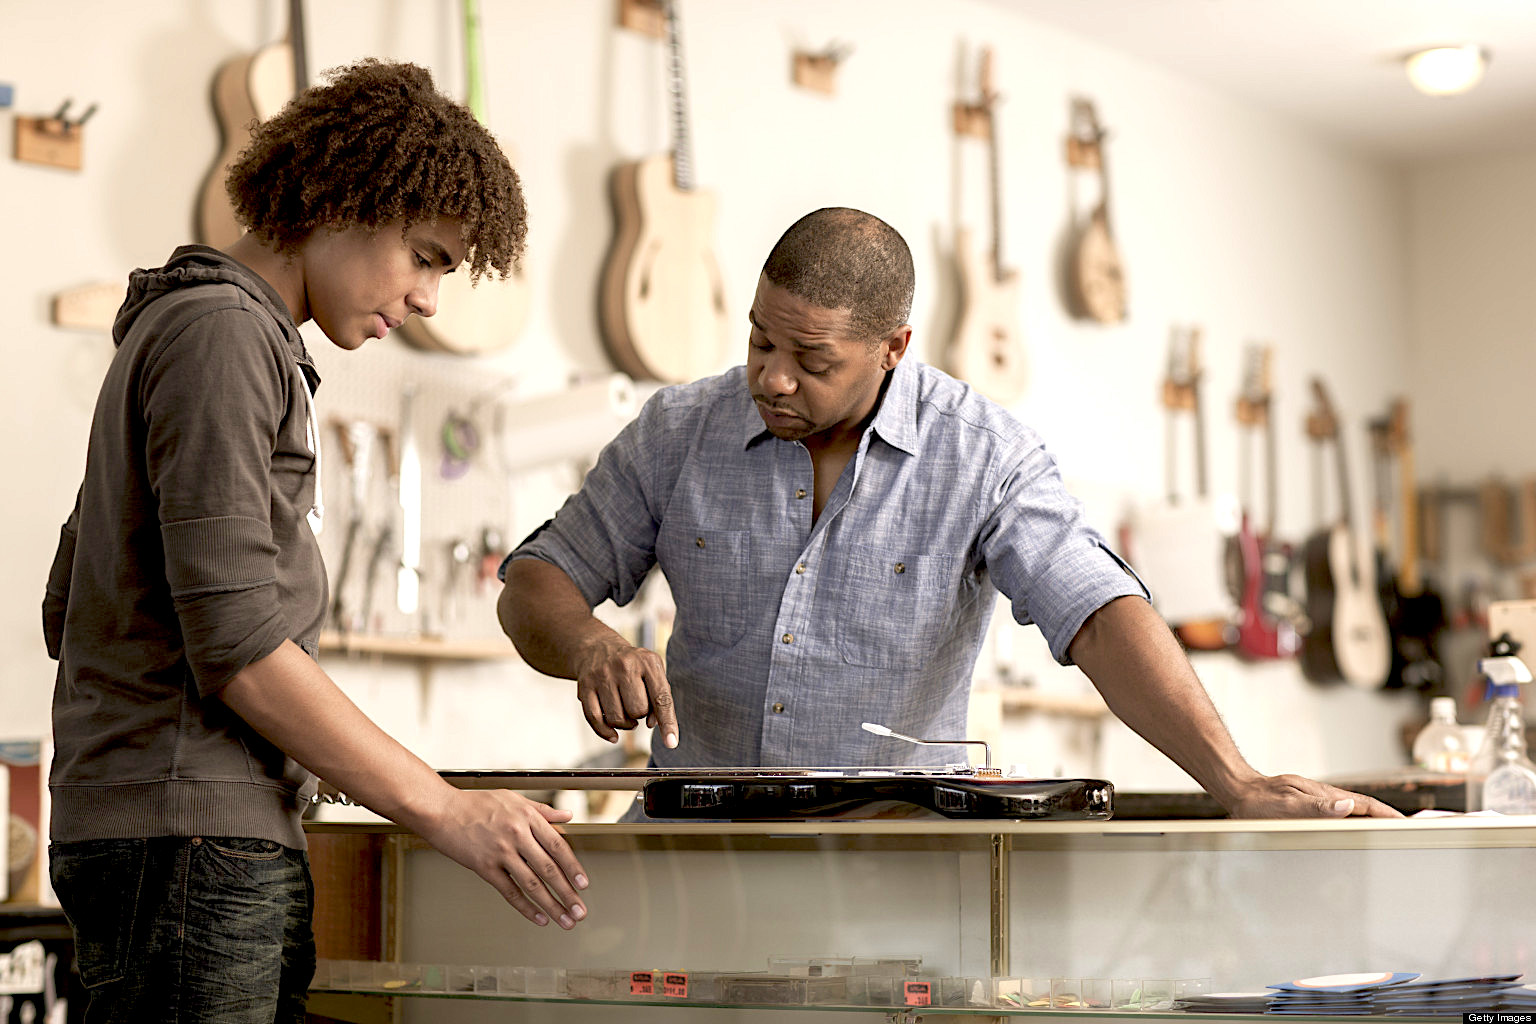 Father and son in music workshop. Credit: Getty Images